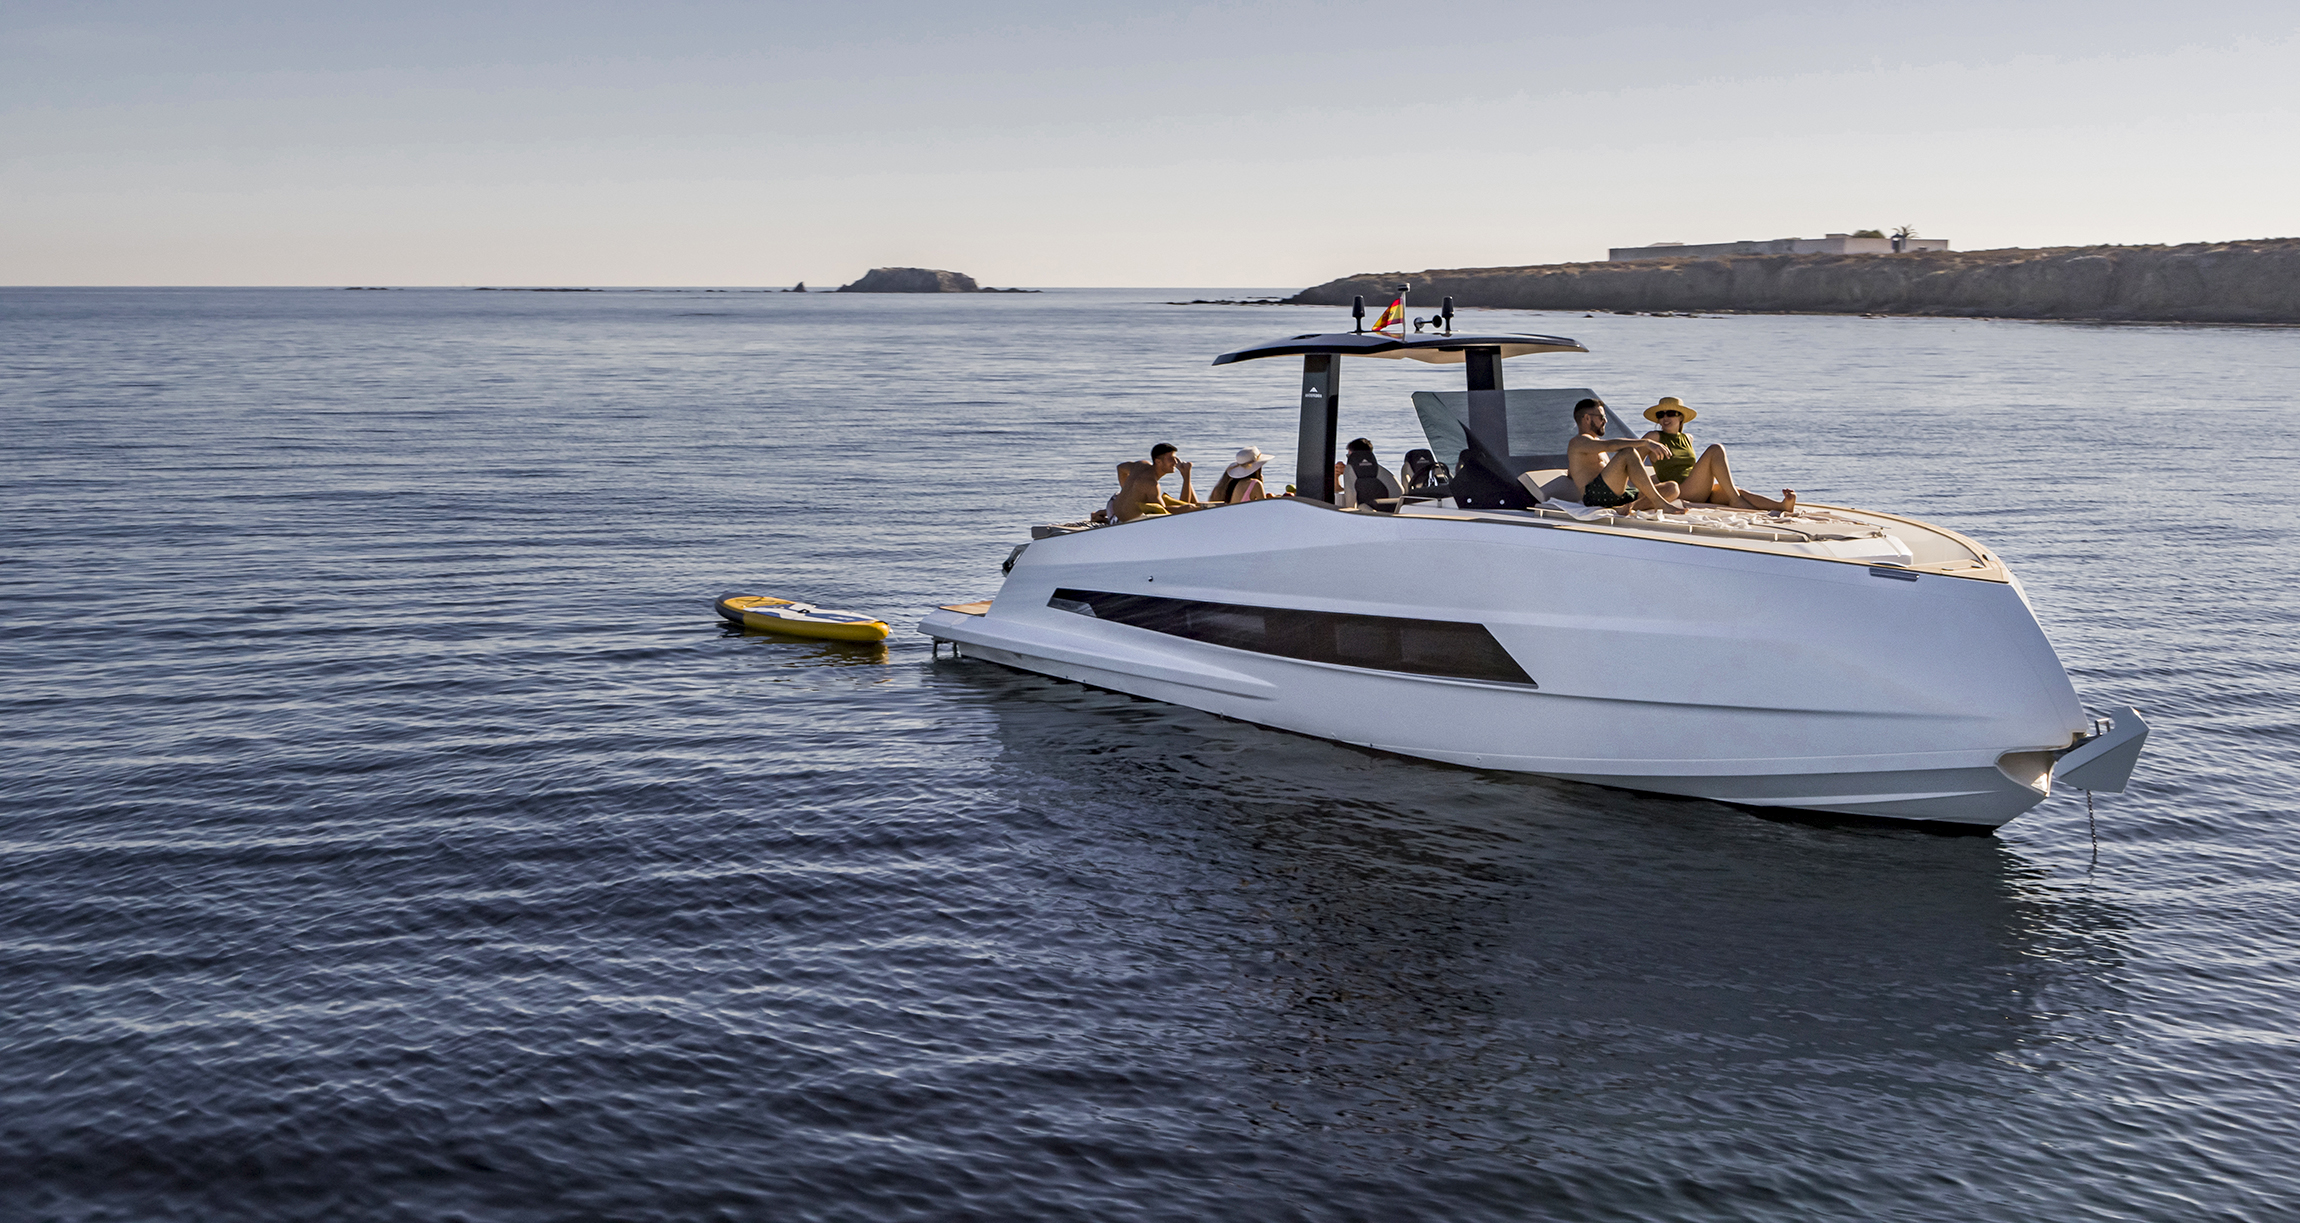 The 377 COUPE sets course for the Barcelona Boat Show in full colour